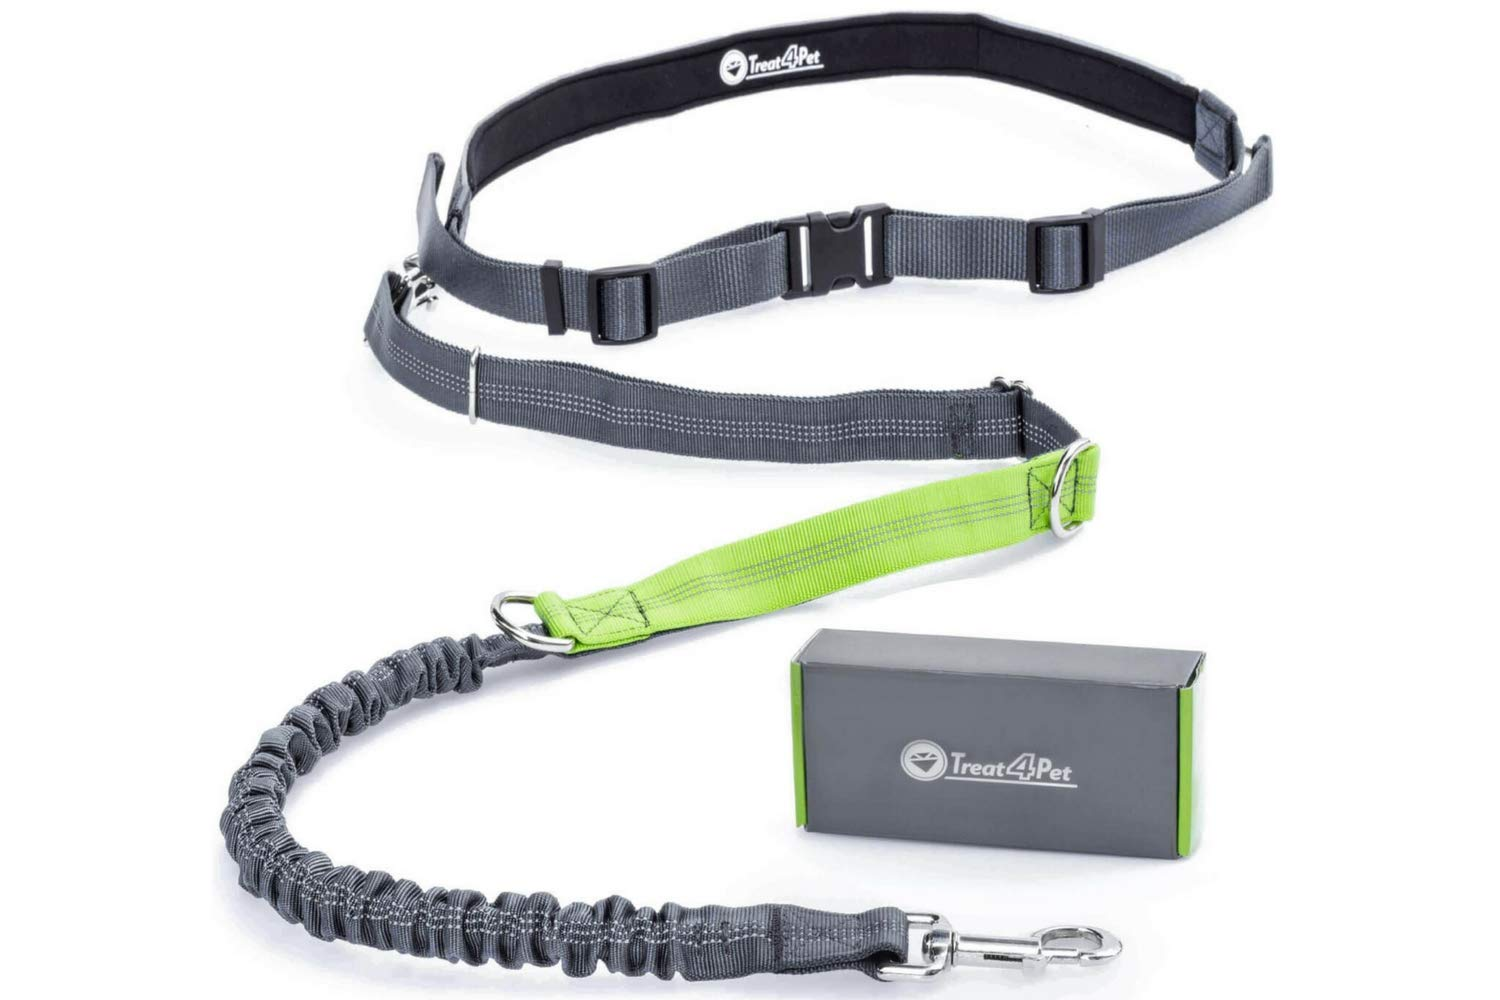 Treat4Pet Premium Hands Free Dog Leash for Running, Comfortable Waistbelt & Adjustable Length! Reflective Stitching & Control Handle. Retractable Shock Absorbing Bungee for up to 150 lbs Large Dogs. by Treat4Pet